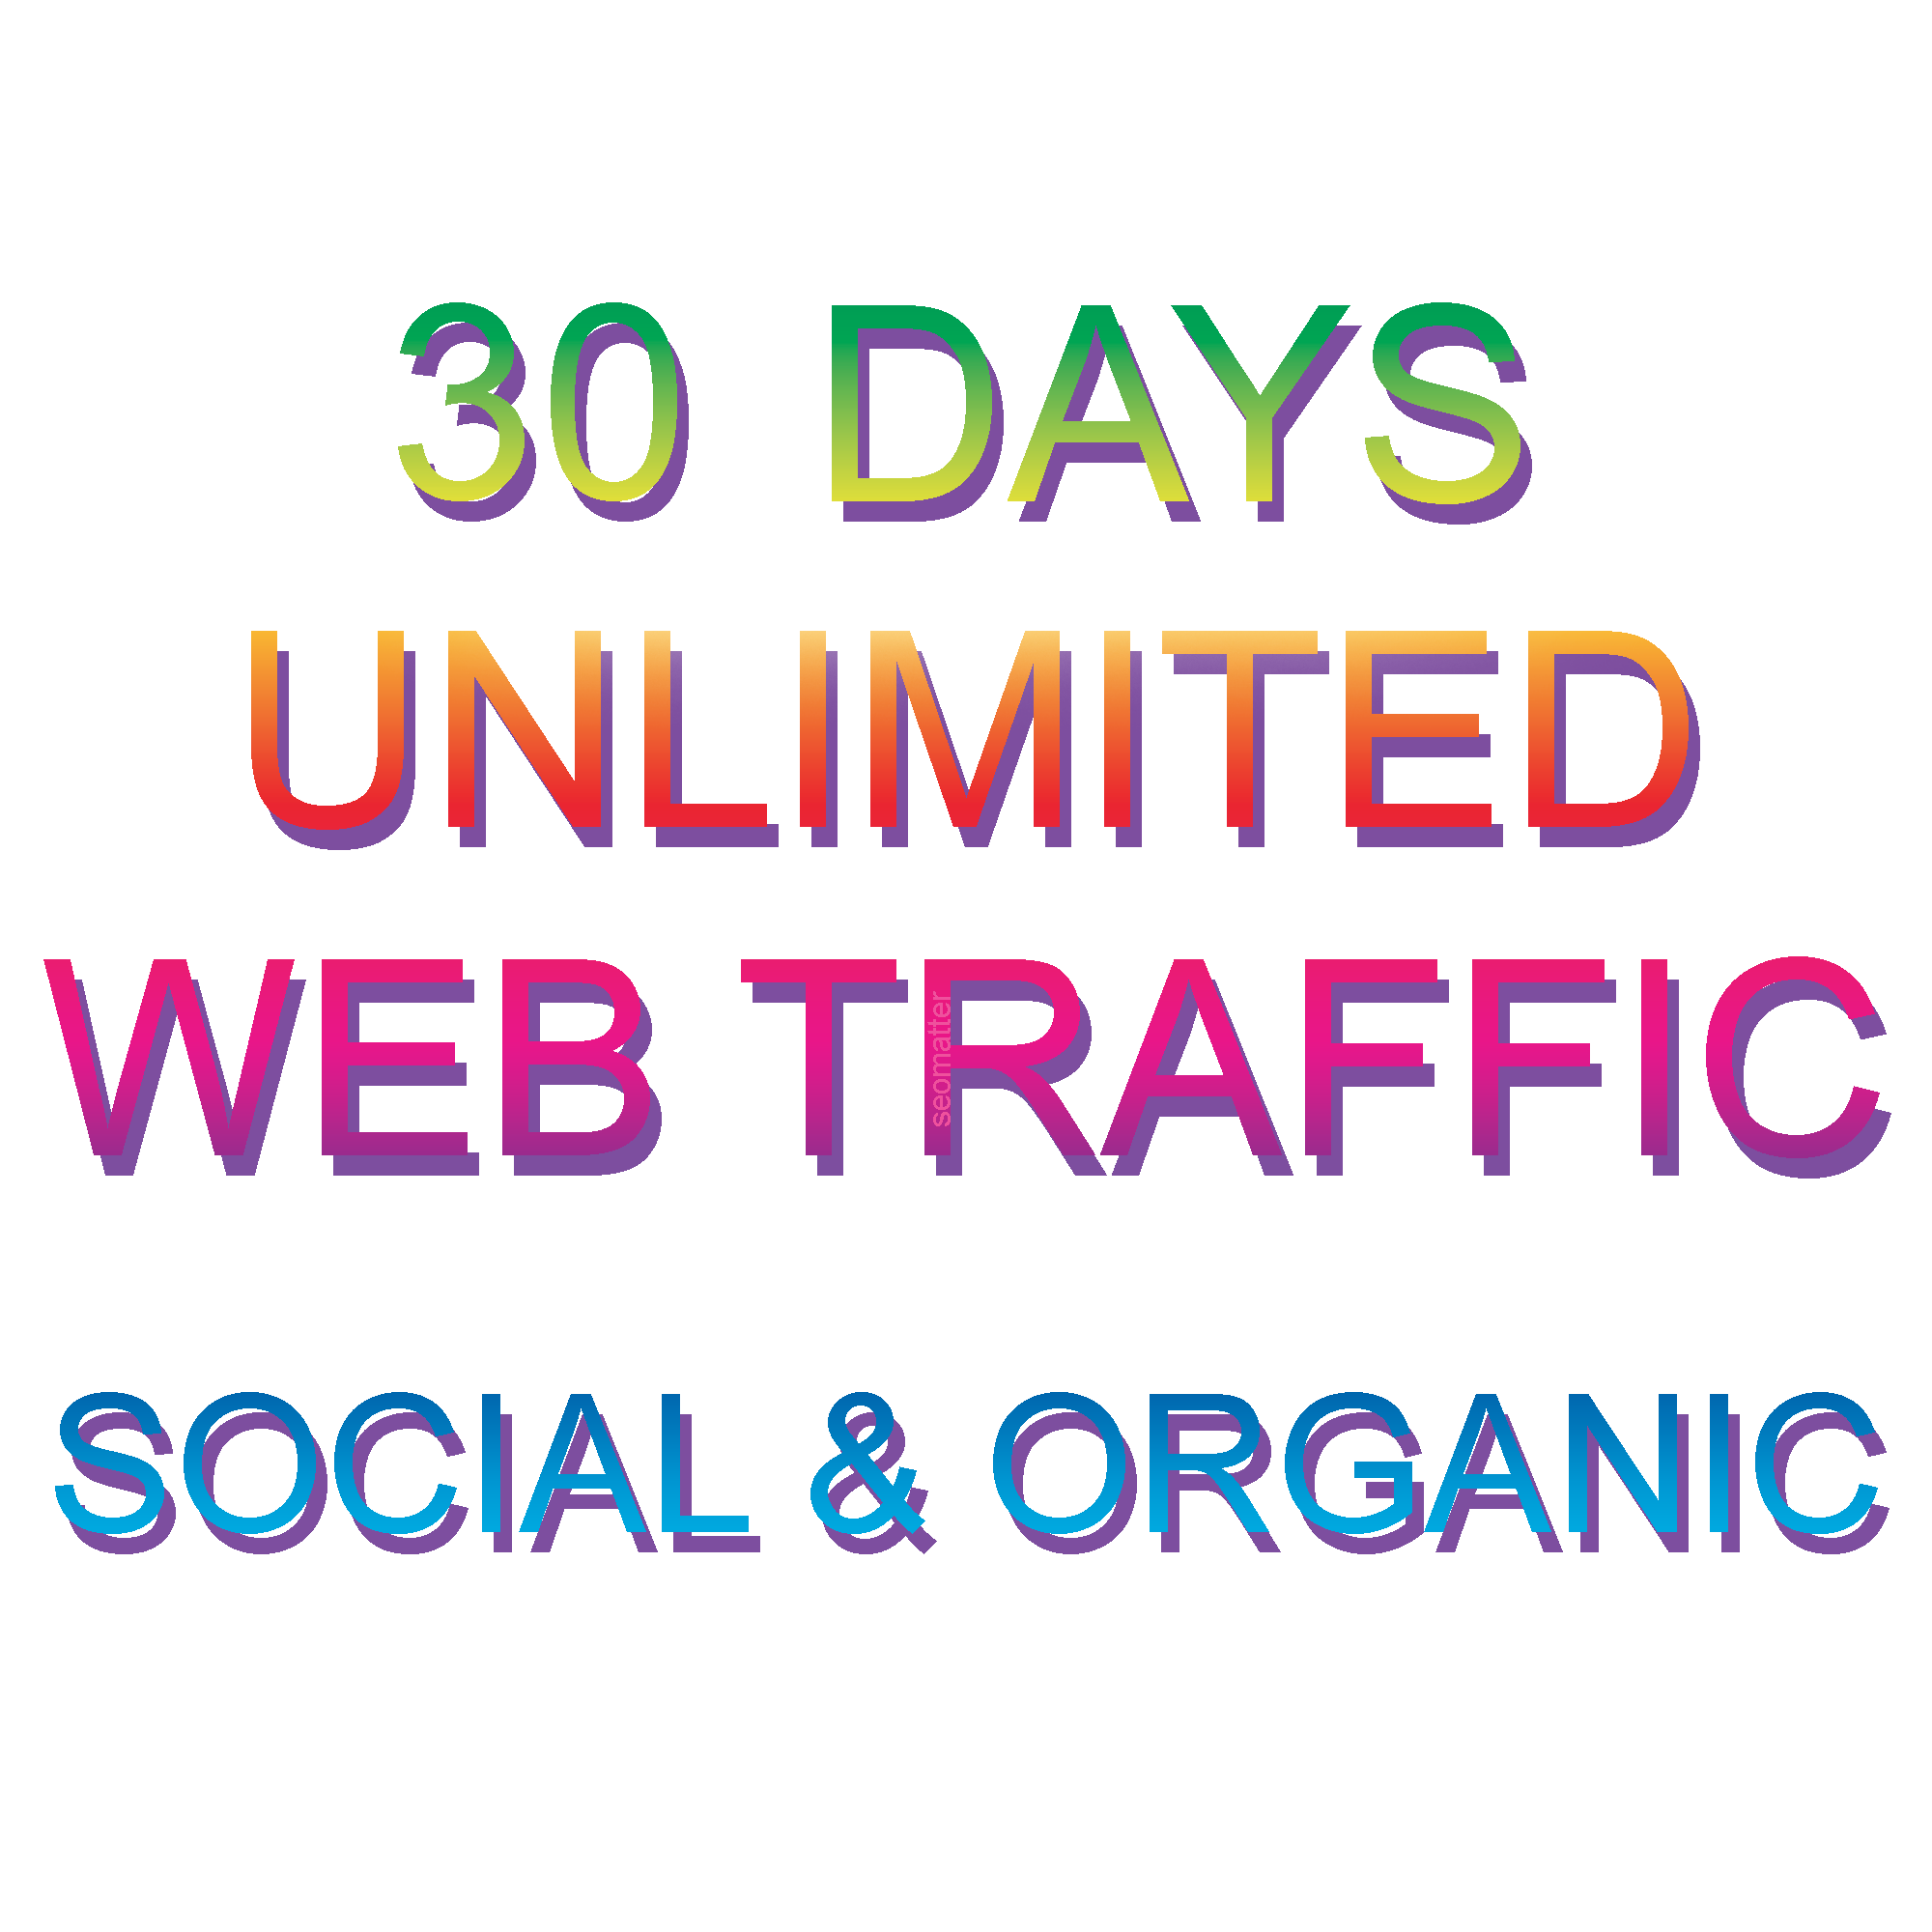 UNLIMITED targeted organic web traffic for 30 days